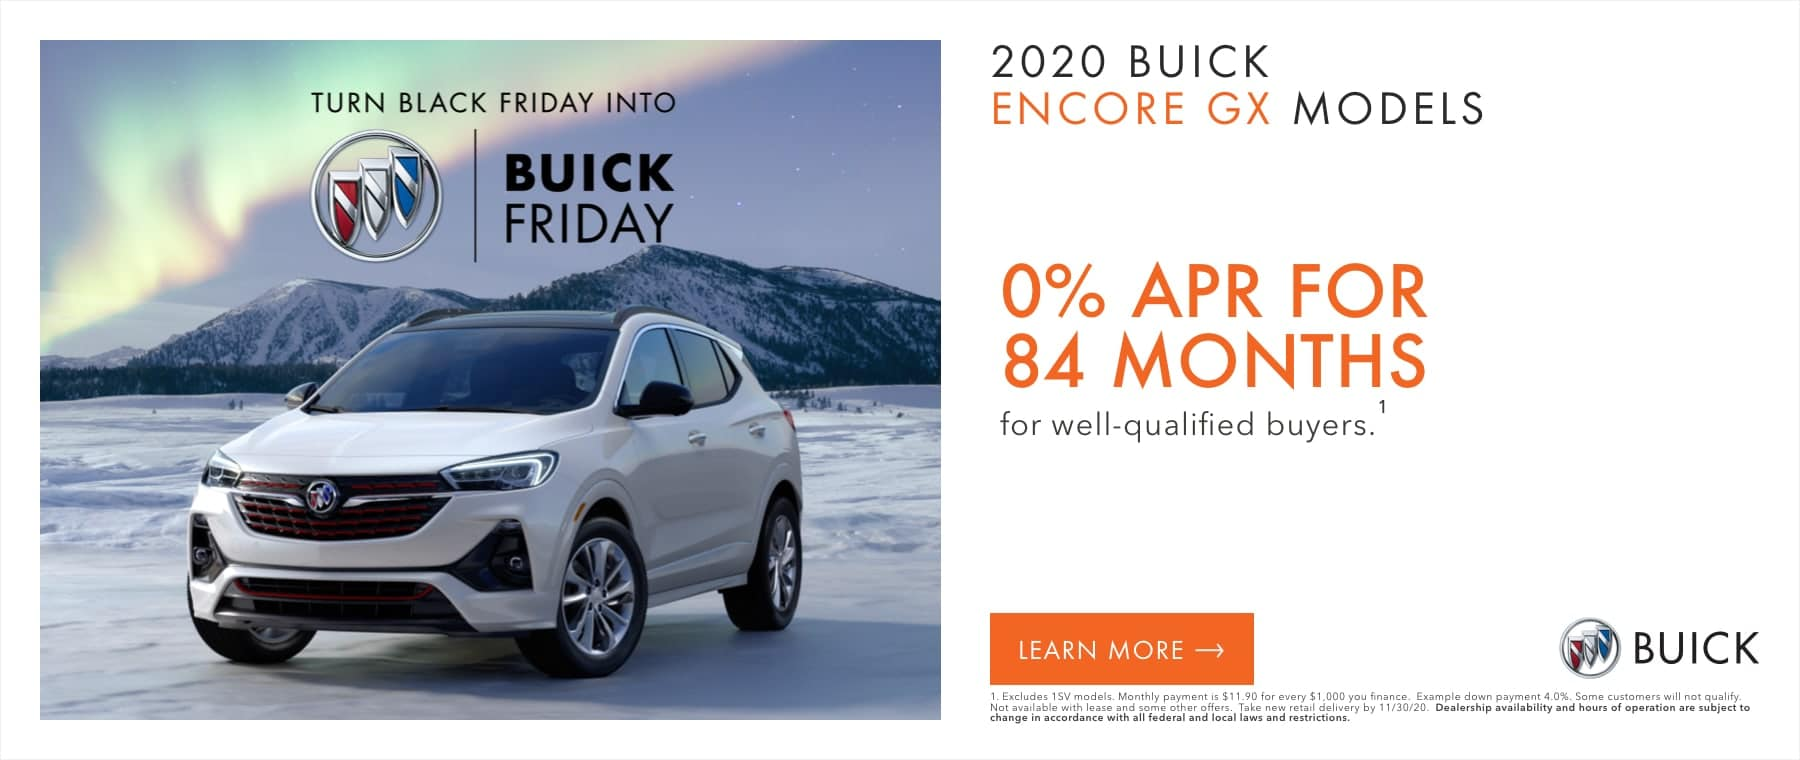 2020 BUICK ENCORE GX MODELS - 0% APR for 84 months for well-qualified buyers.1